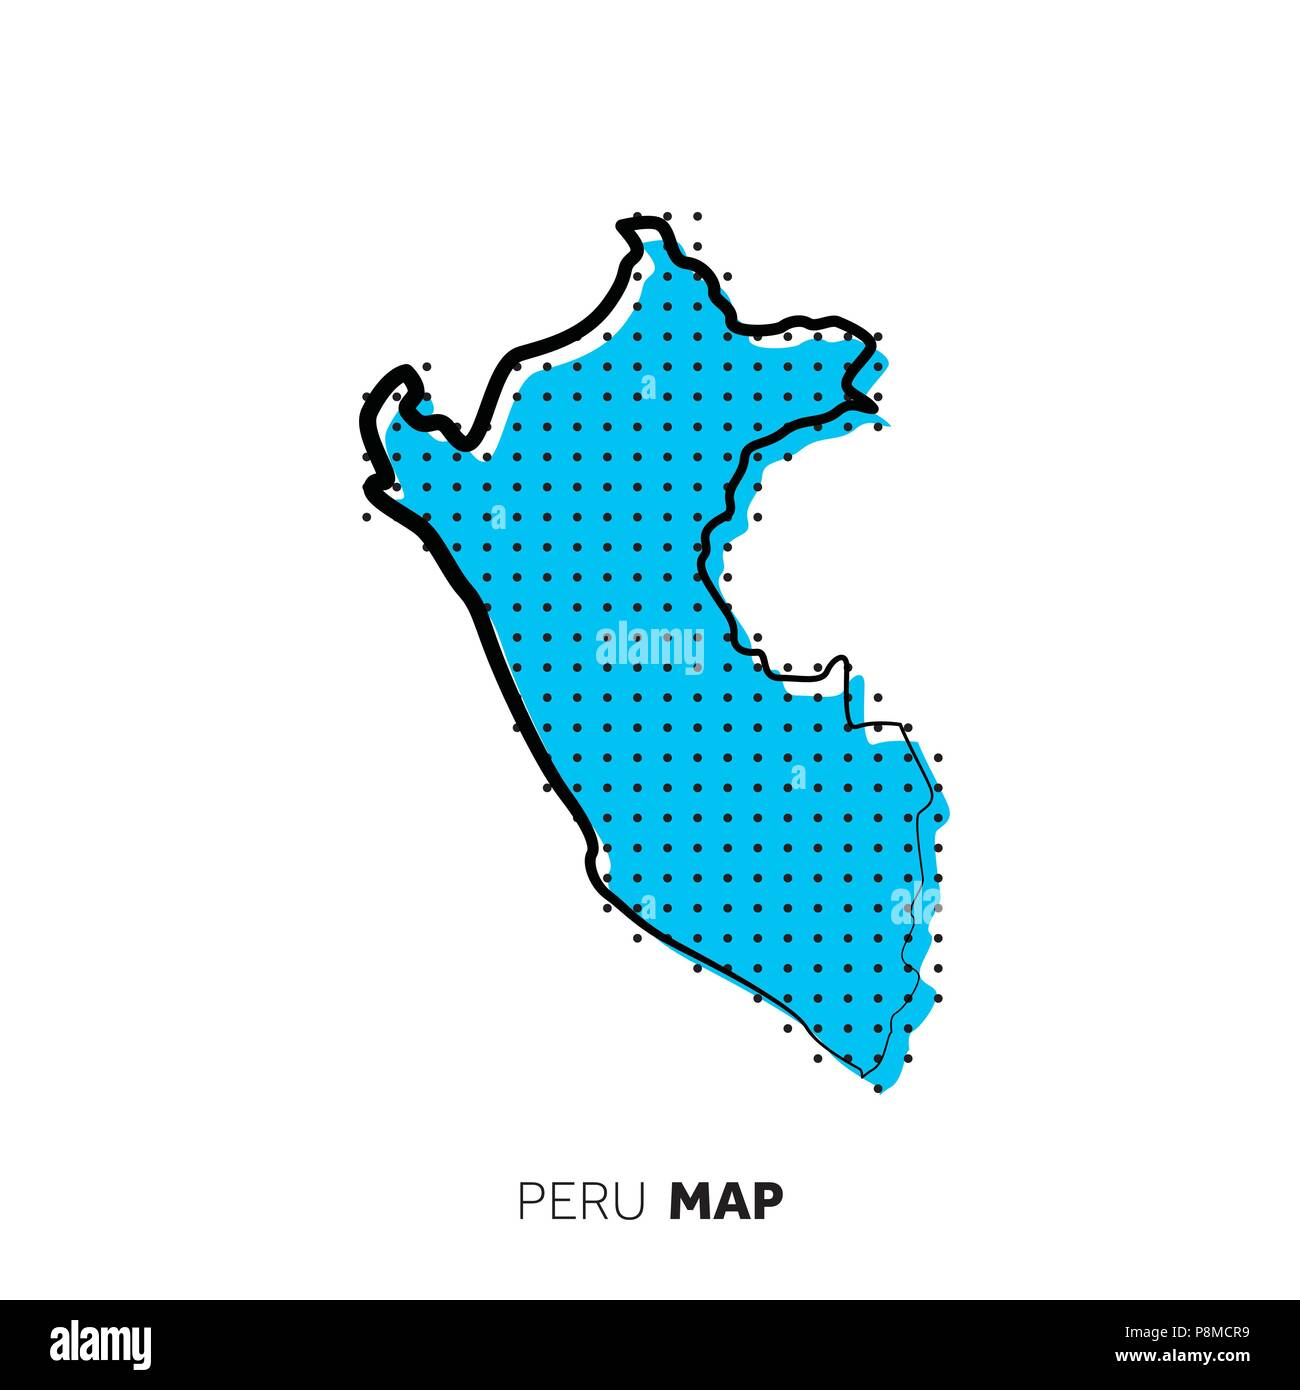 Peru vector country map. Map outline with dots Stock Vector Art ...